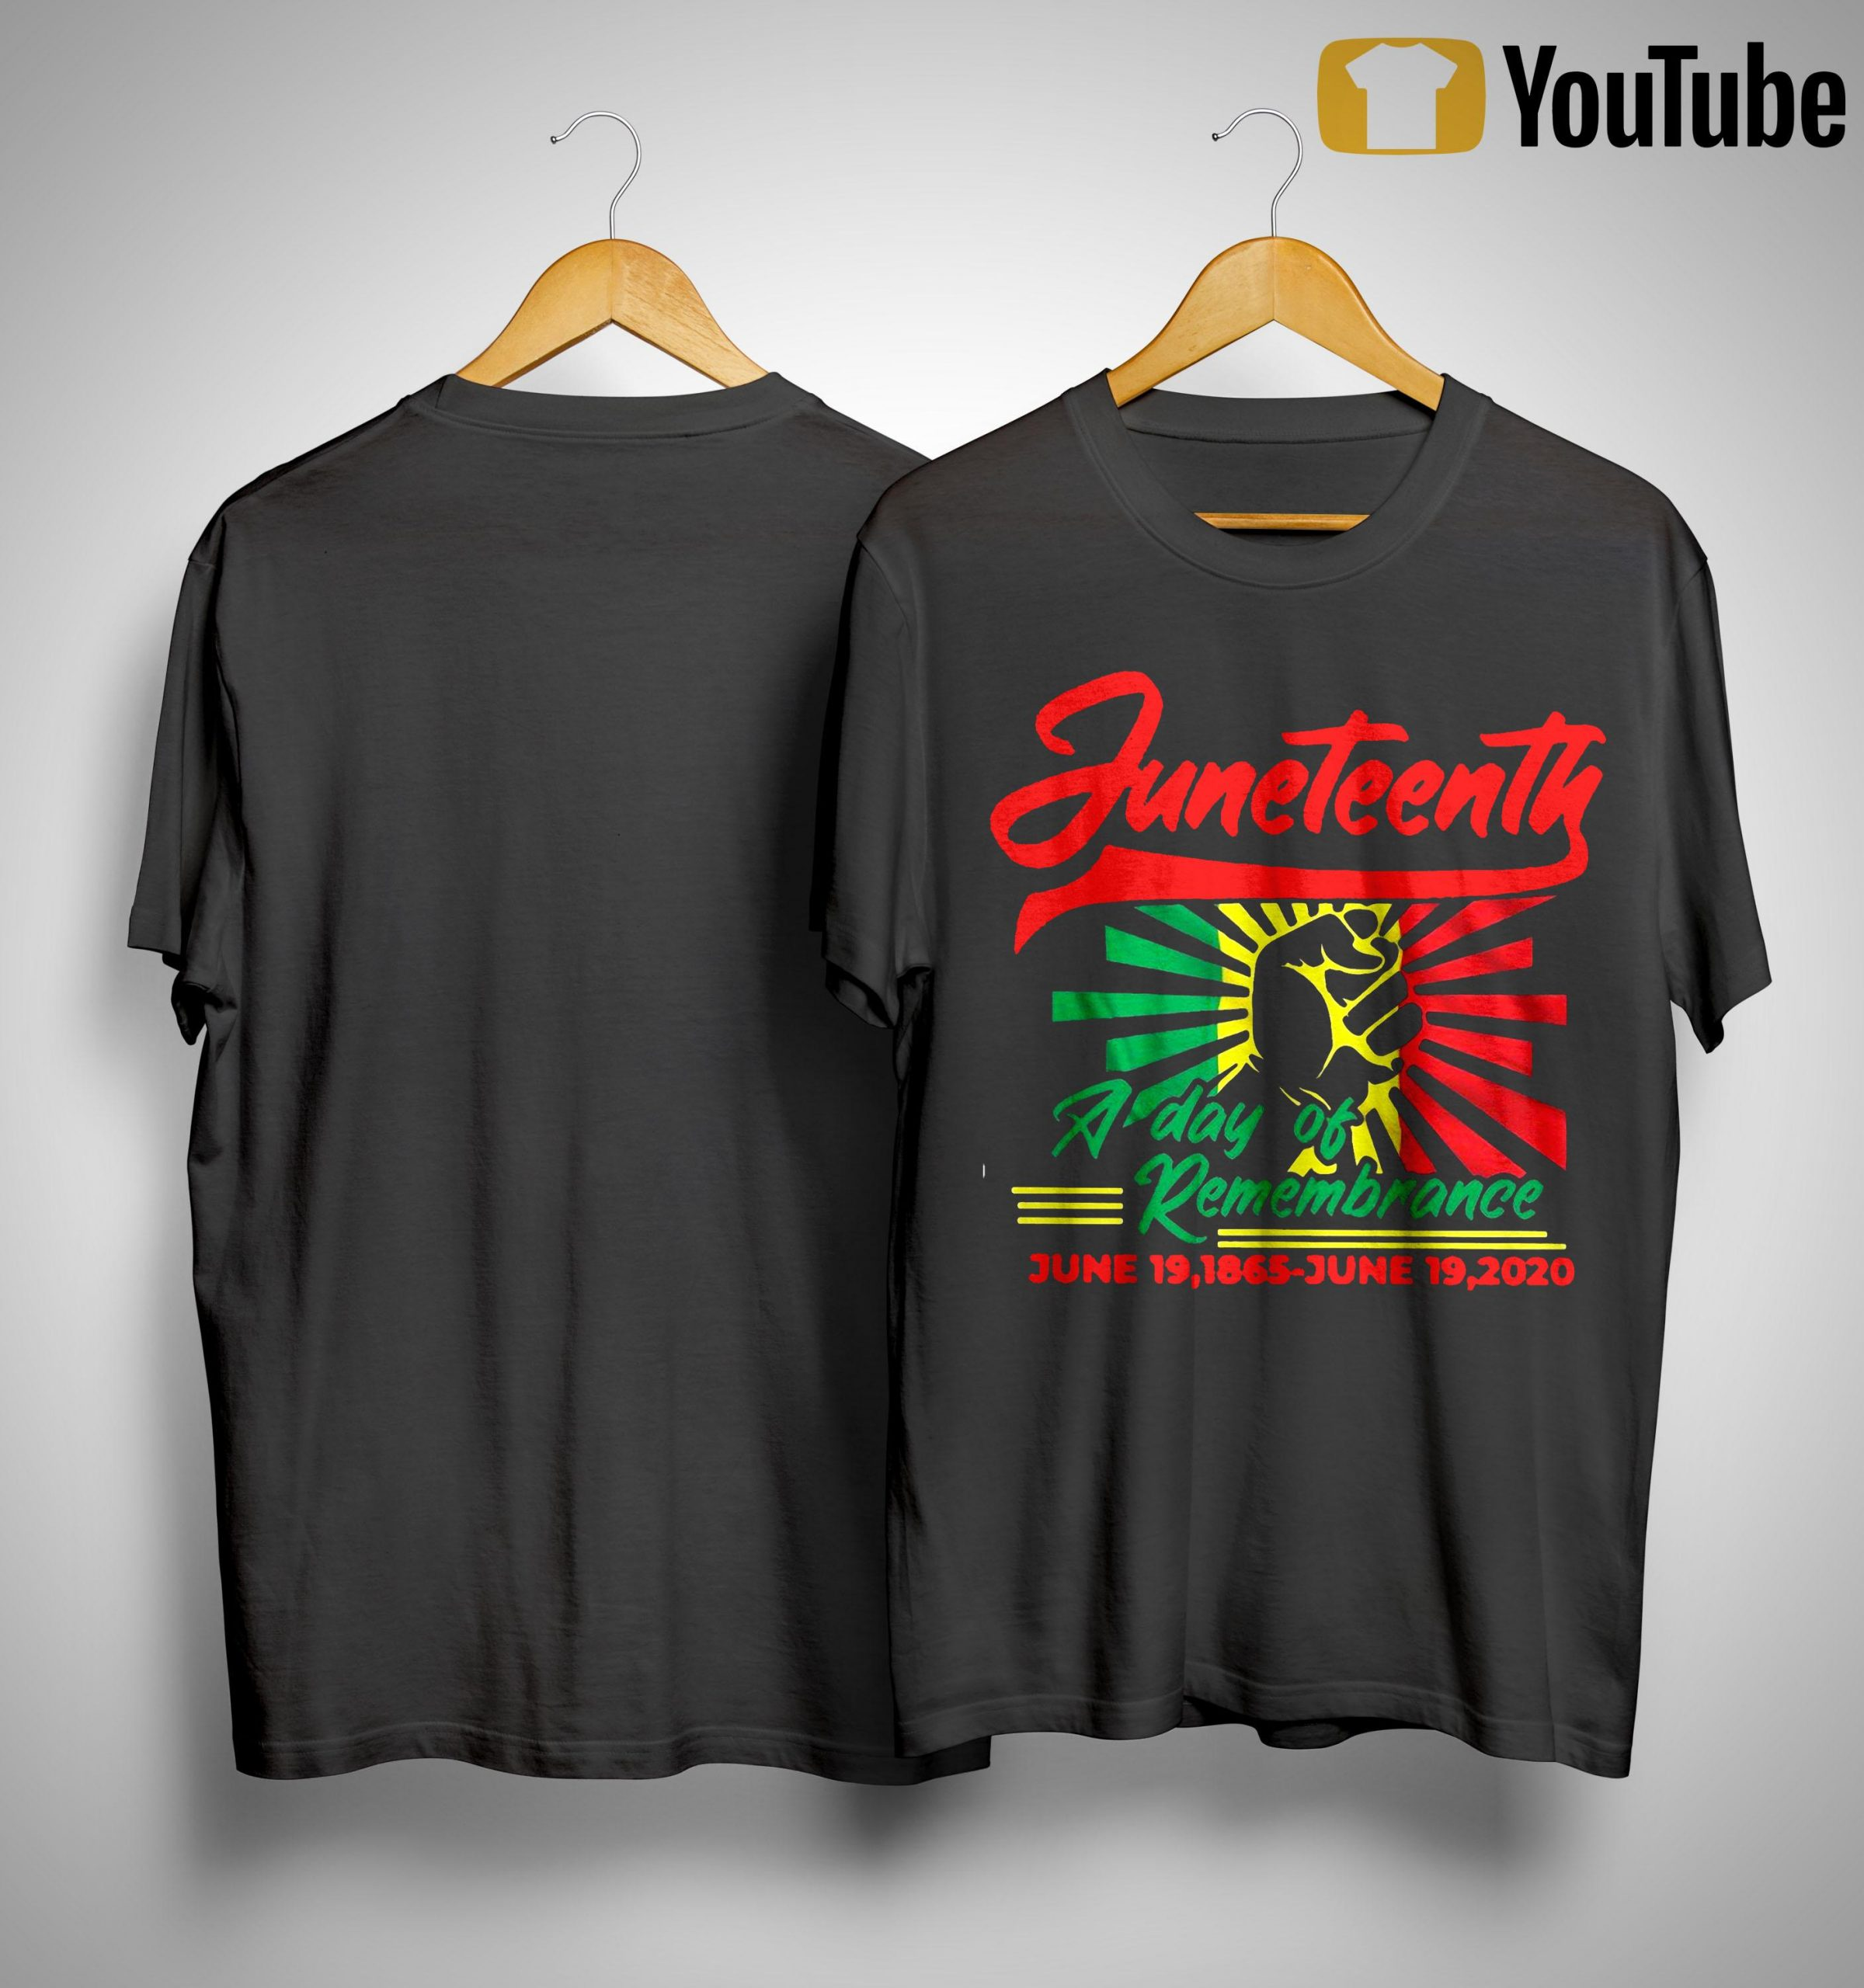 Juneteenth A Day Of Remembrance June 19 1865 June 19 2020 Shirt